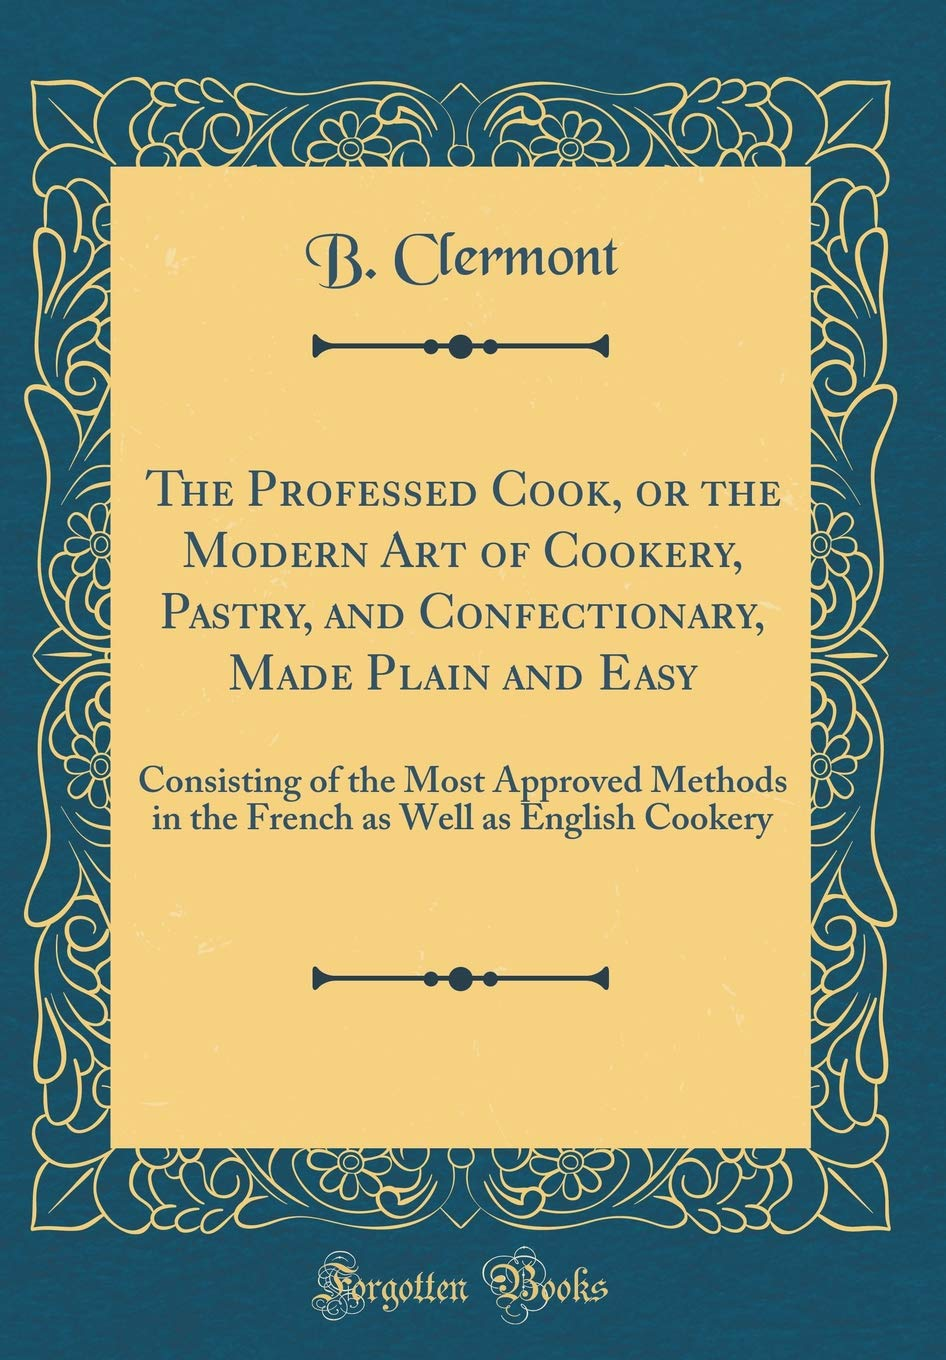 Download The Professed Cook, or the Modern Art of Cookery, Pastry, and Confectionary, Made Plain and Easy: Consisting of the Most Approved Methods in the French as Well as English Cookery (Classic Reprint) ebook